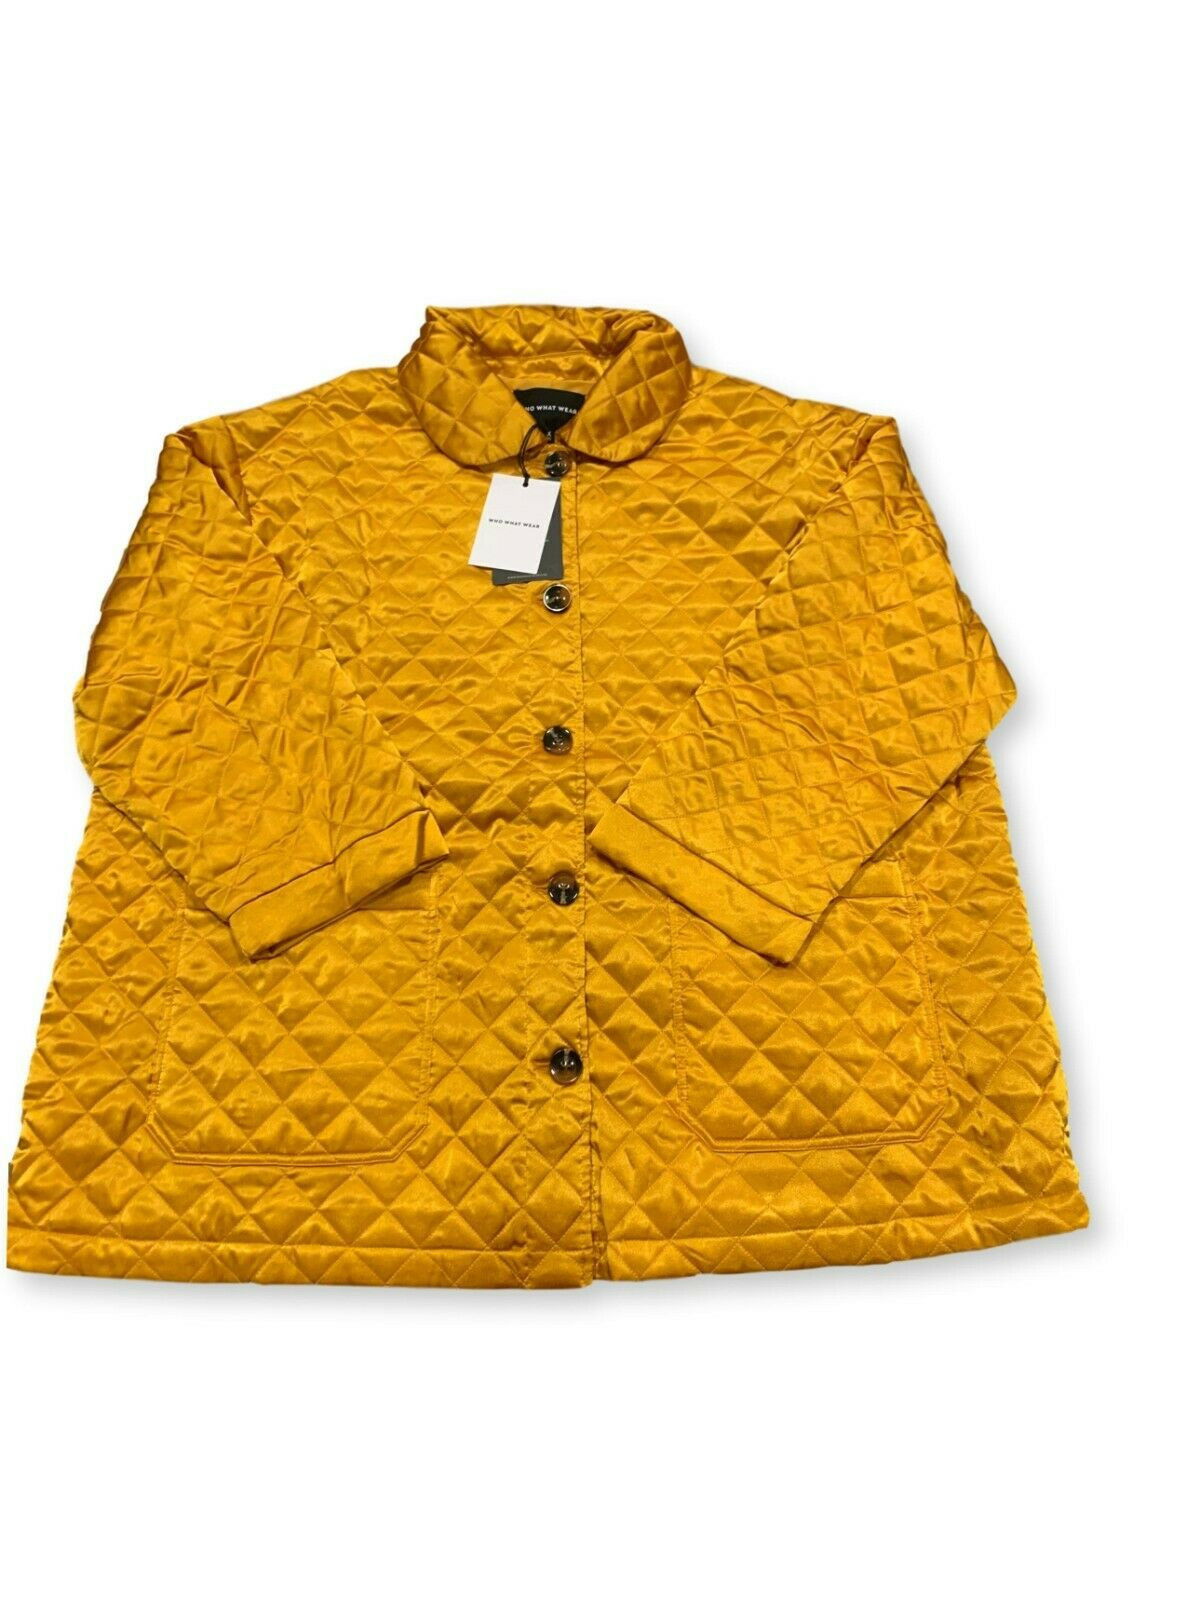 Women's Plus Size Long Sleeve Quilted Satin Jacket – Who What Wear Yellow 3X Clothing, Shoes & Accessories